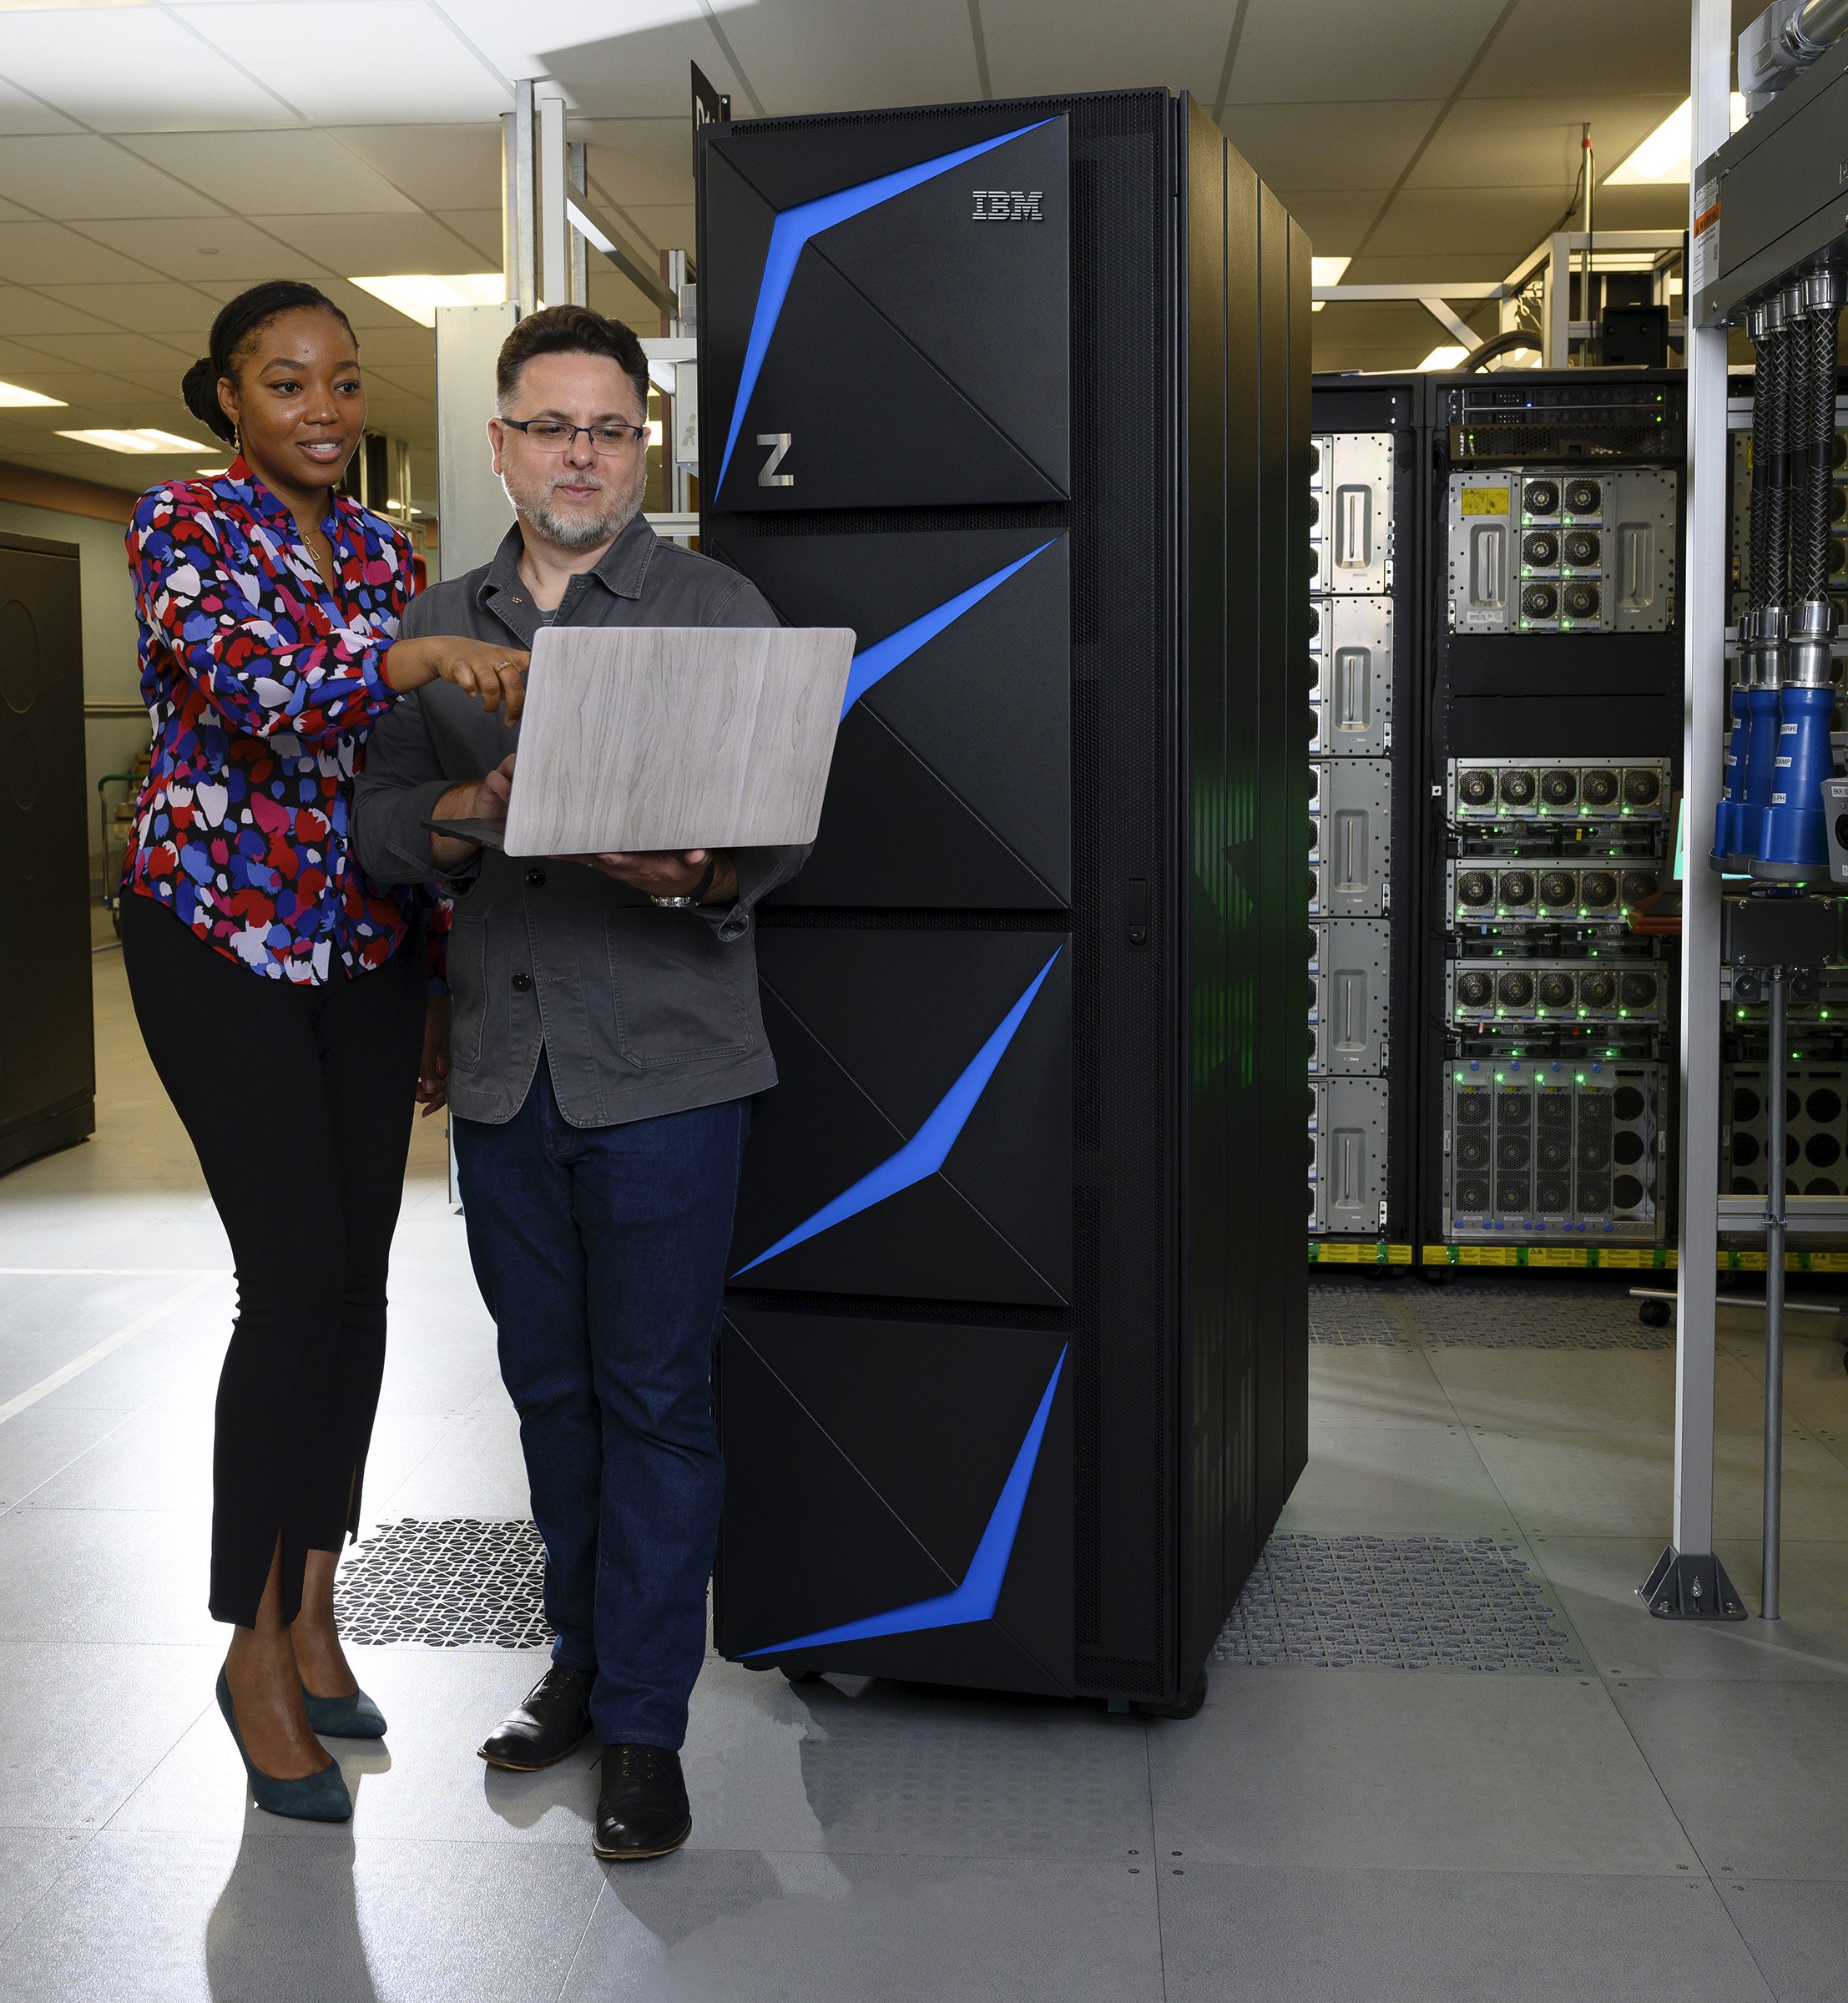 IBM Designers, Shani Sandy (L) and Don Spangler, review last minute specifications on the new z15 after four years of collaboration with 100 clients to build the enterprise system on Thursday, September 12, 2019, Poughkeepsie, NY. IBM announced the new system will have an industry-first capability to instantly revoke access to data across the hybrid cloud. IBM z15 can process up to 1 trillion web transactions a day and features new cloud-native development tools and instant recovery technology to optimize resiliency. (Jon Simon/Feature Photo Service for IBM)